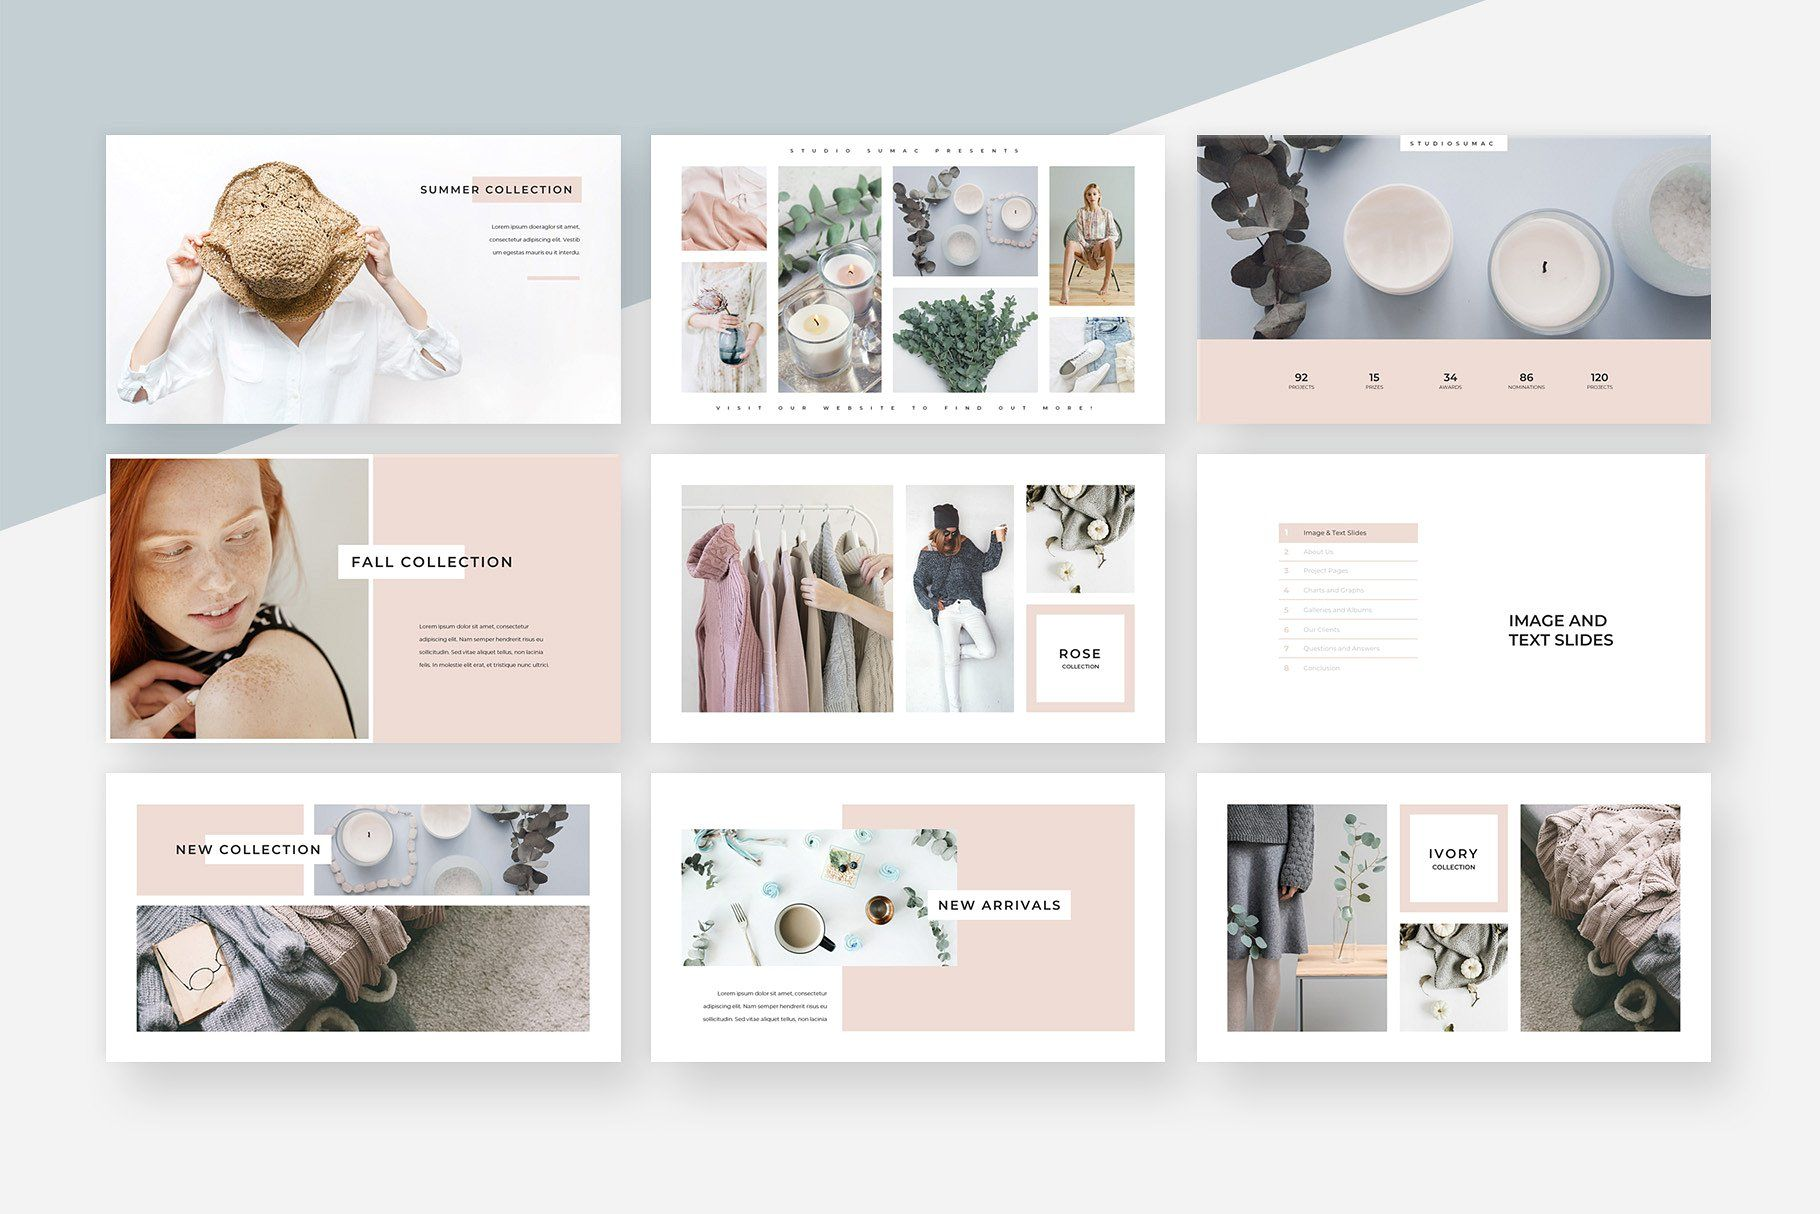 magnolia powerpoint presentation by studio sumac on  creativemarket  powerpoint  template